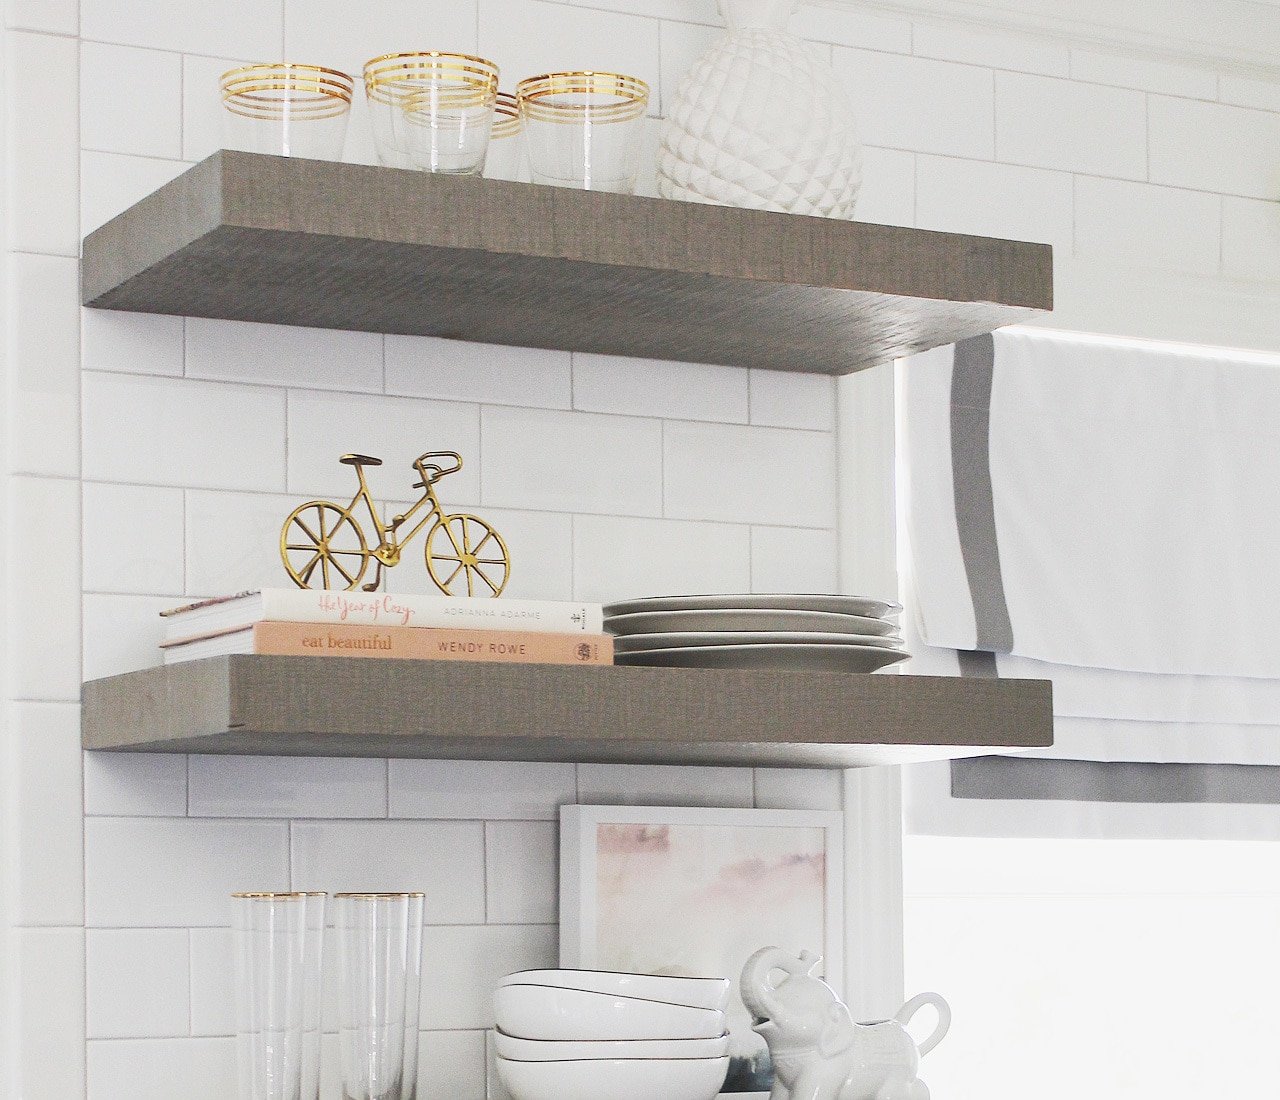 floating shelf bracket fits inch shelves gray kitchen light wall easily install with our steel wood bathroom vanity ideas garage storage for shovels computer desk angle iron